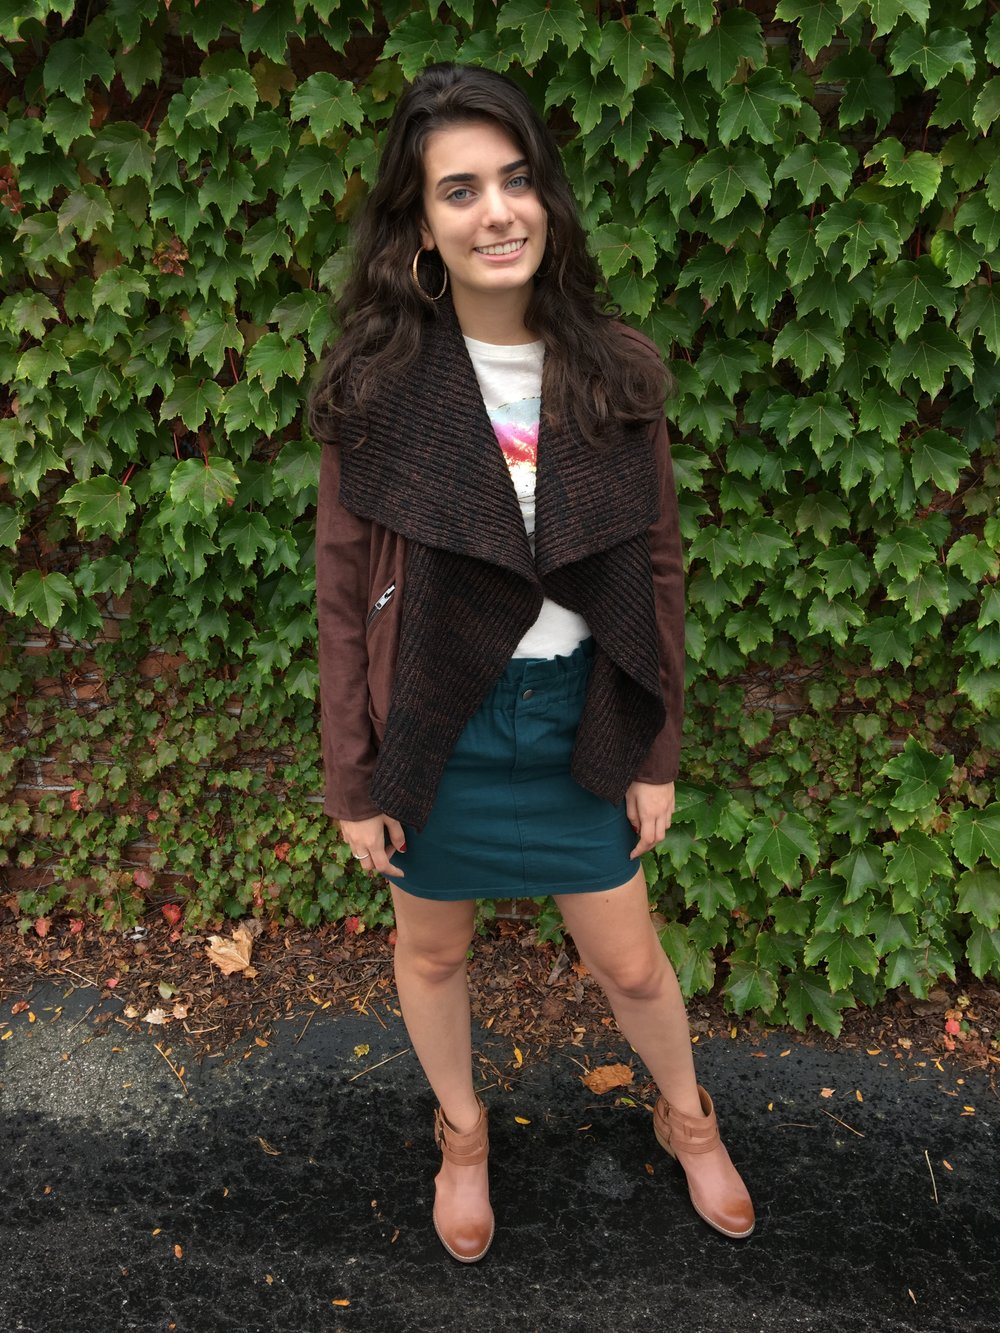 Layering a skirt - Fall into fall with this cute but casual brown suede jacket and teal skirt!